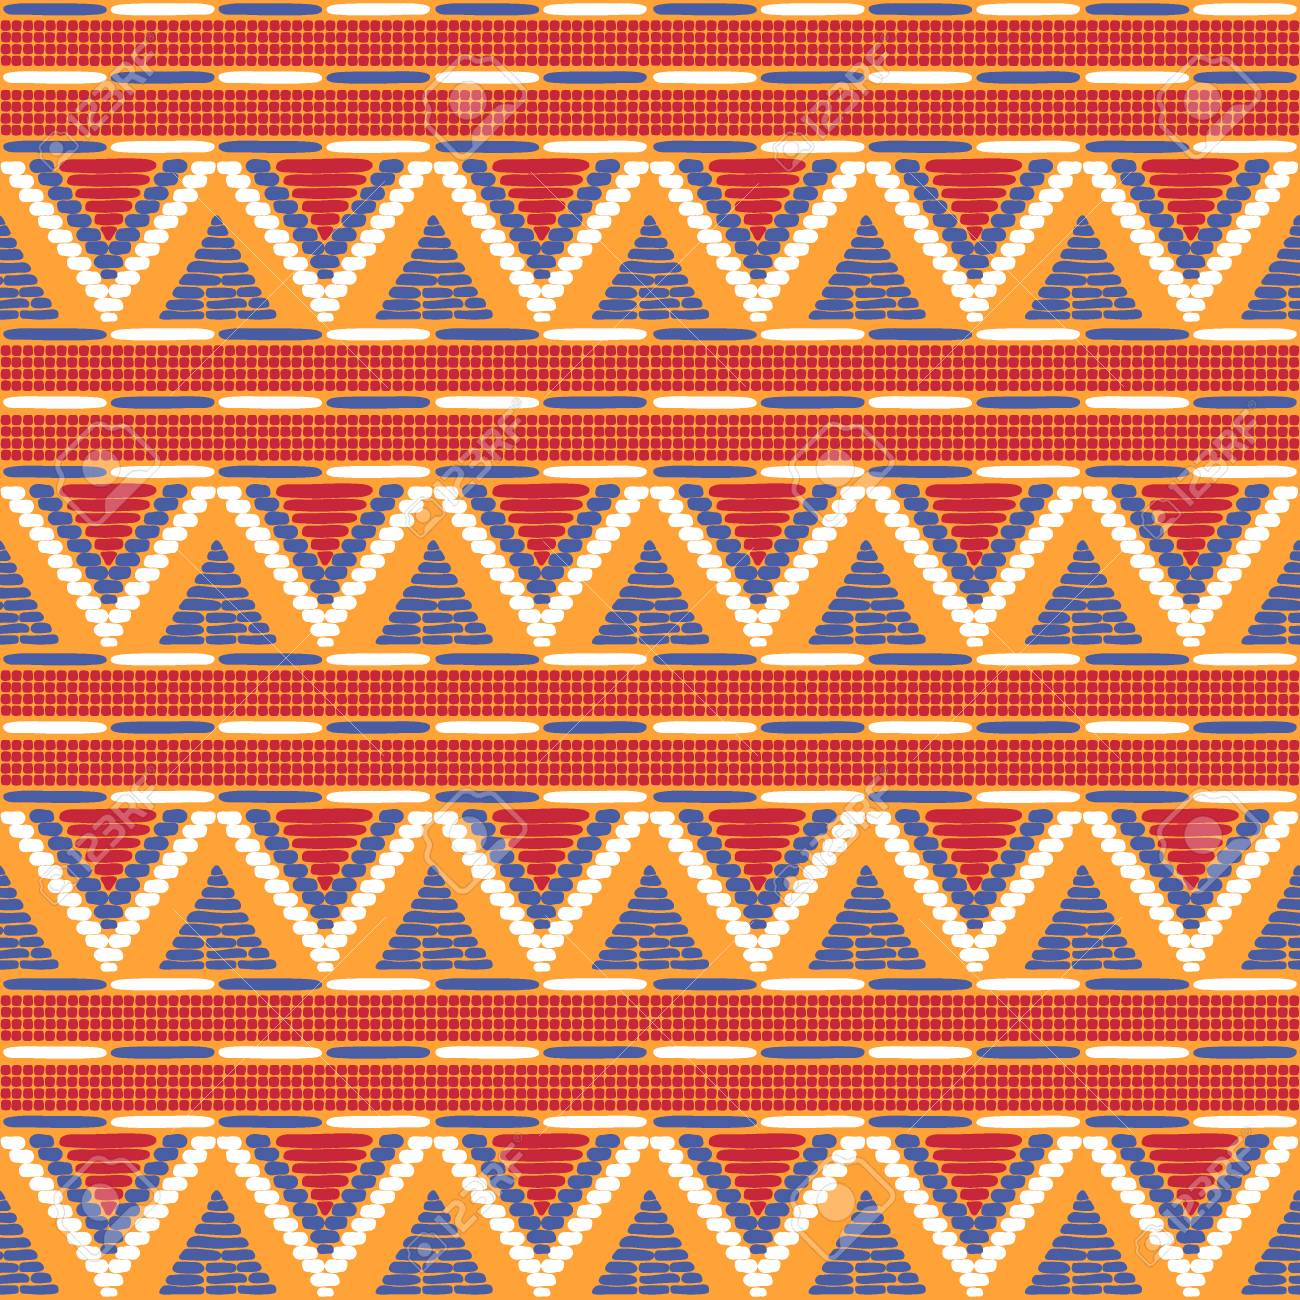 Tribal Pattern Vector Seamless Border Background For Fabric Wallpaper Wrapping Paper And Boho Card